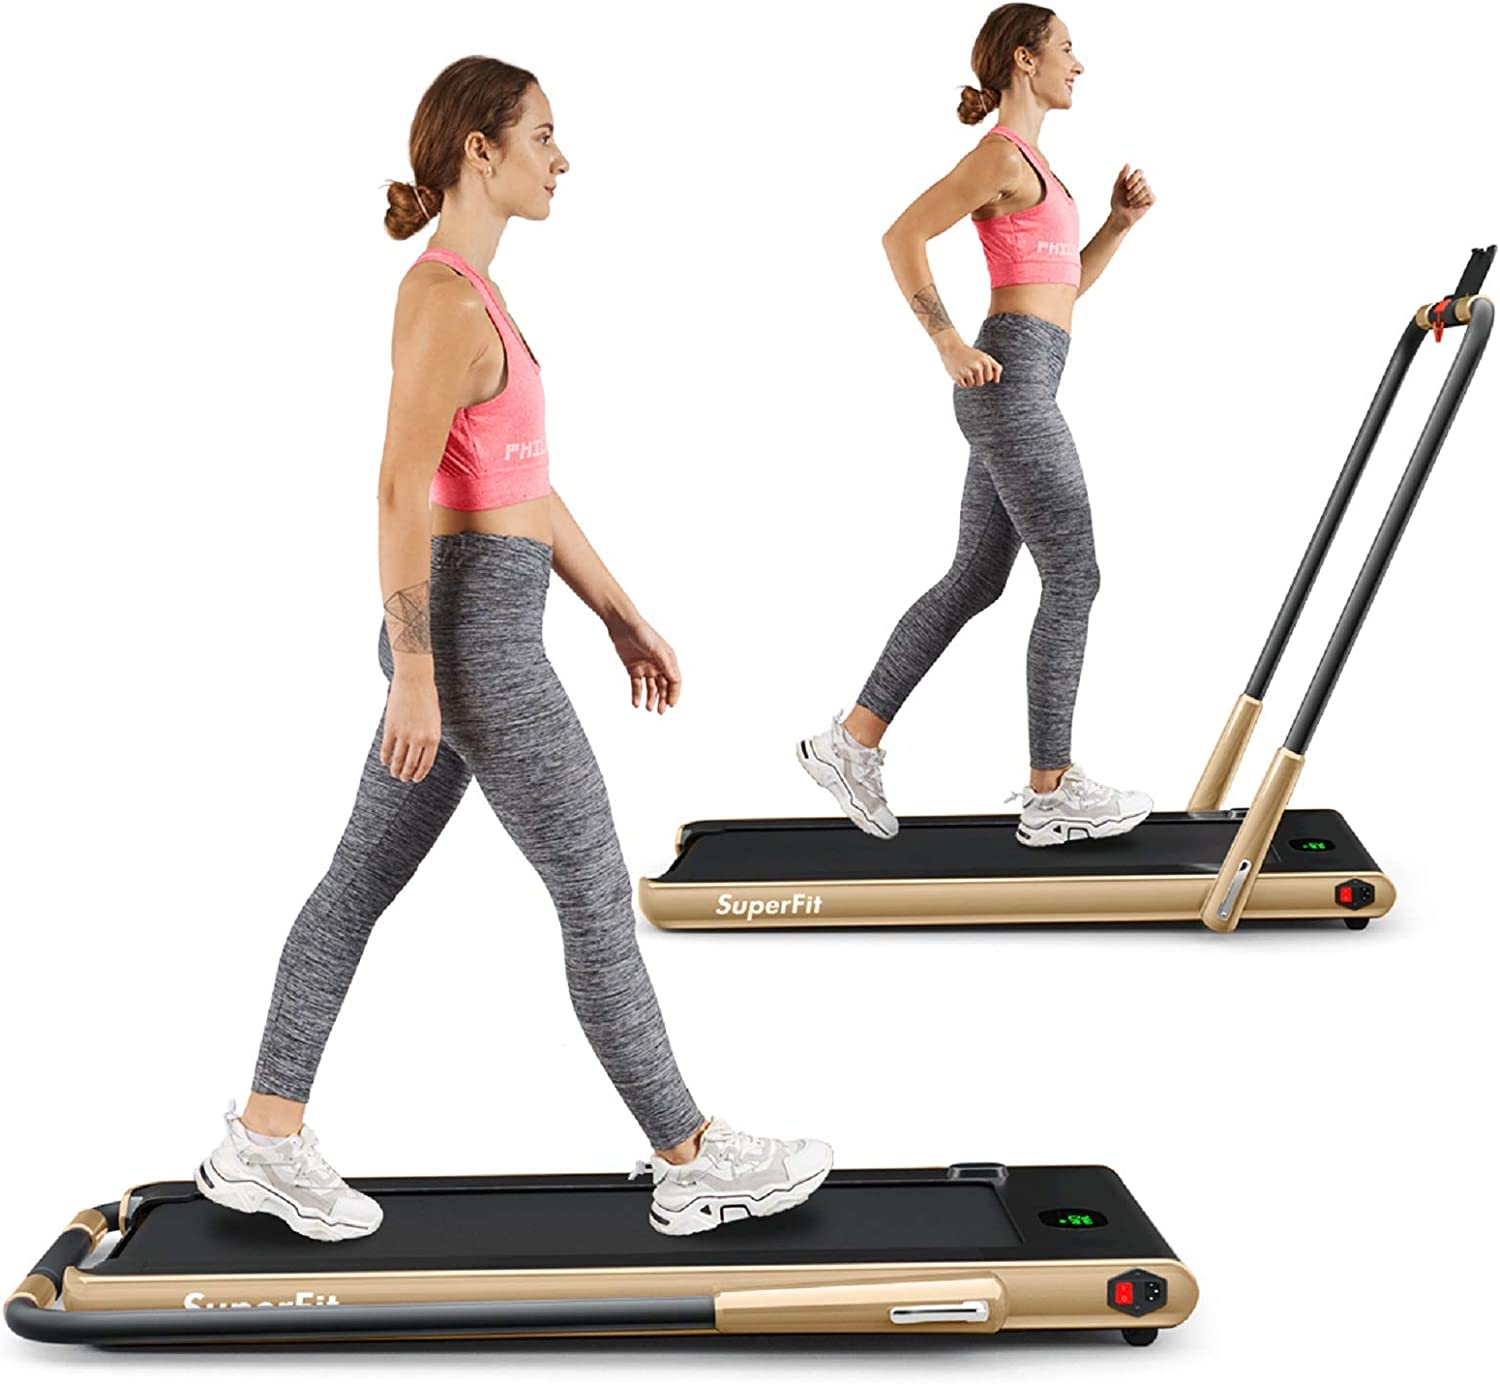 Goplus 2 in 1 Folding Treadmill, 2.25HP Under Desk Electric Treadmill, Installation-Free, with Remote Control, Bluetooth Speaker and LED Display, Walking Jogging Machine for Home Use